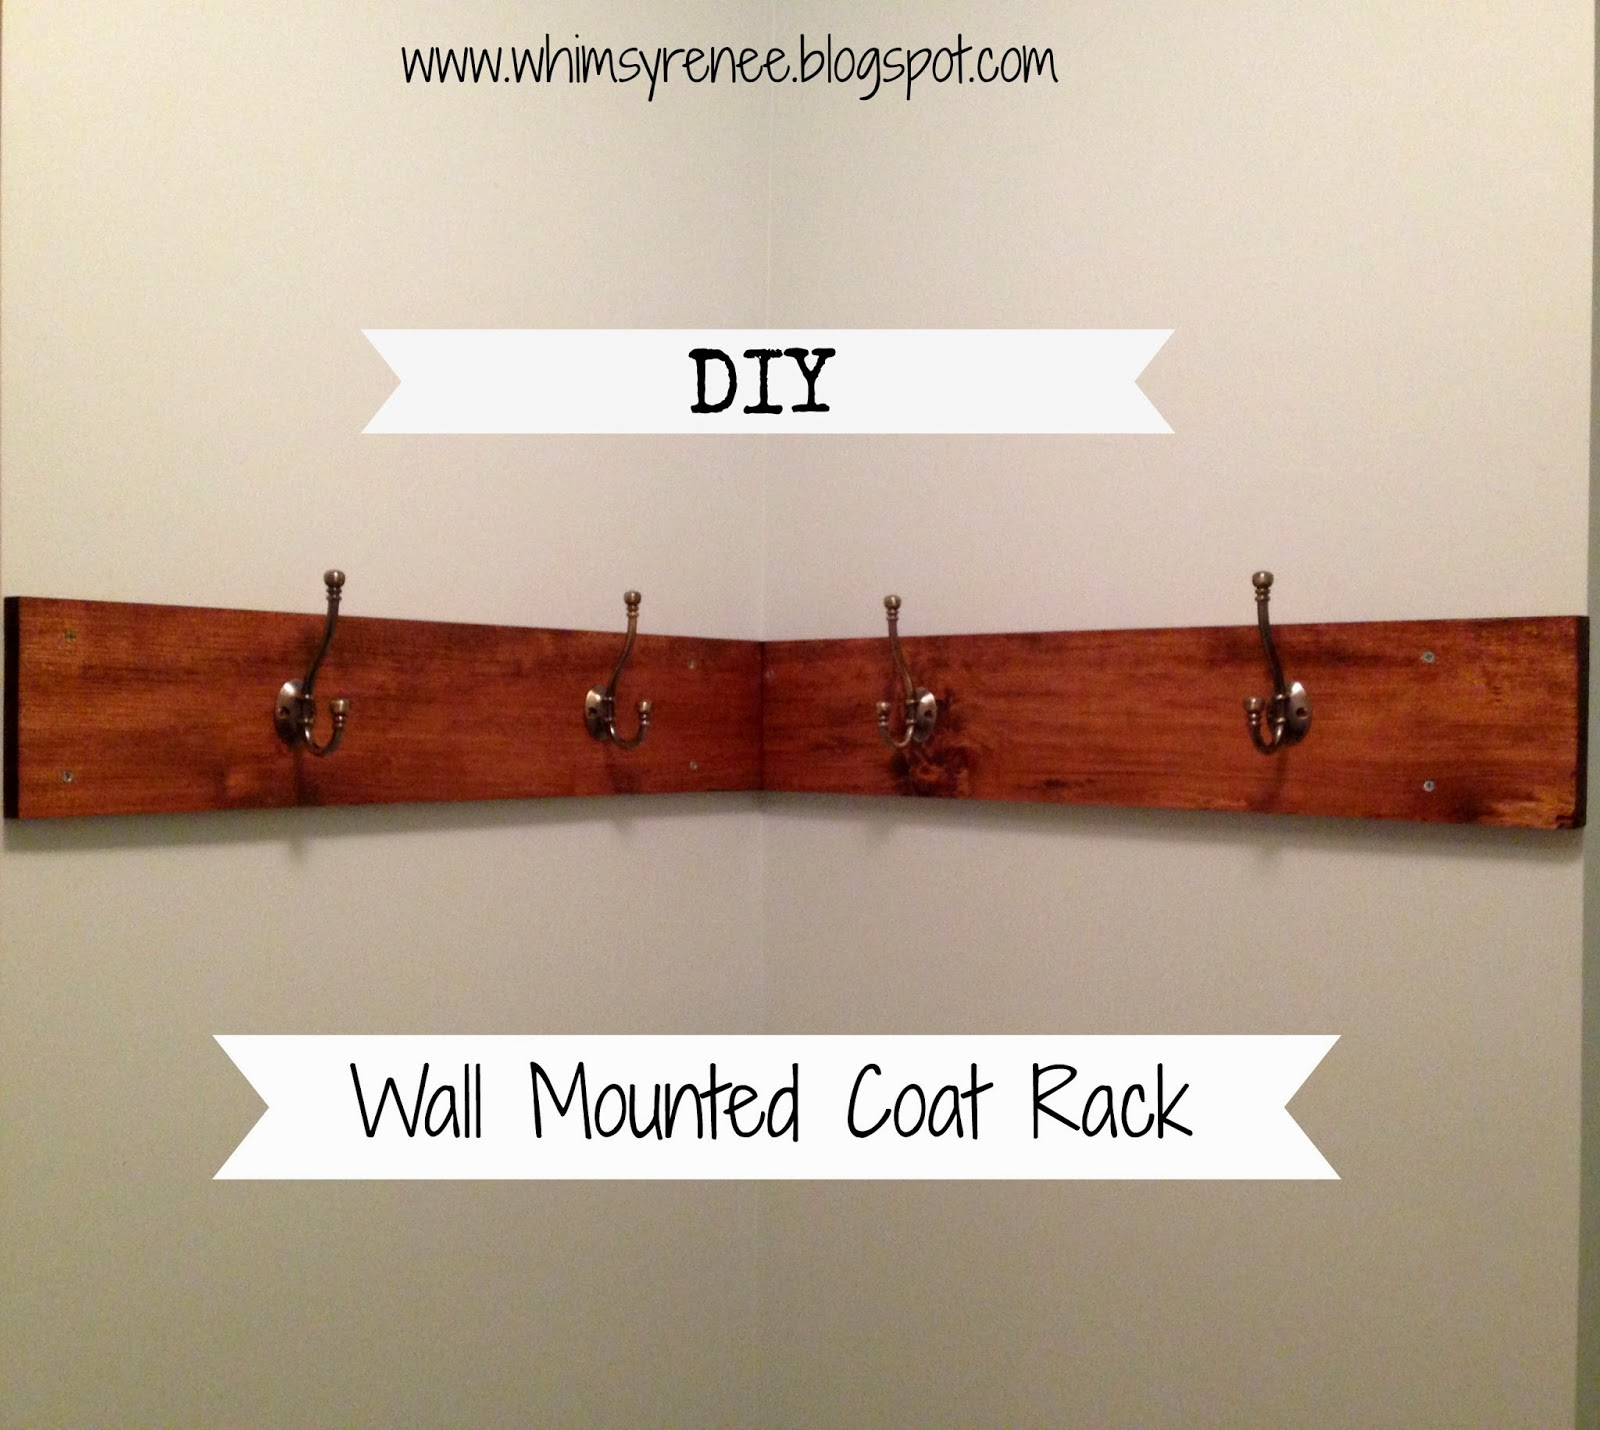 Whimsy Renee: DIY Wall-Mounted Coat Rack